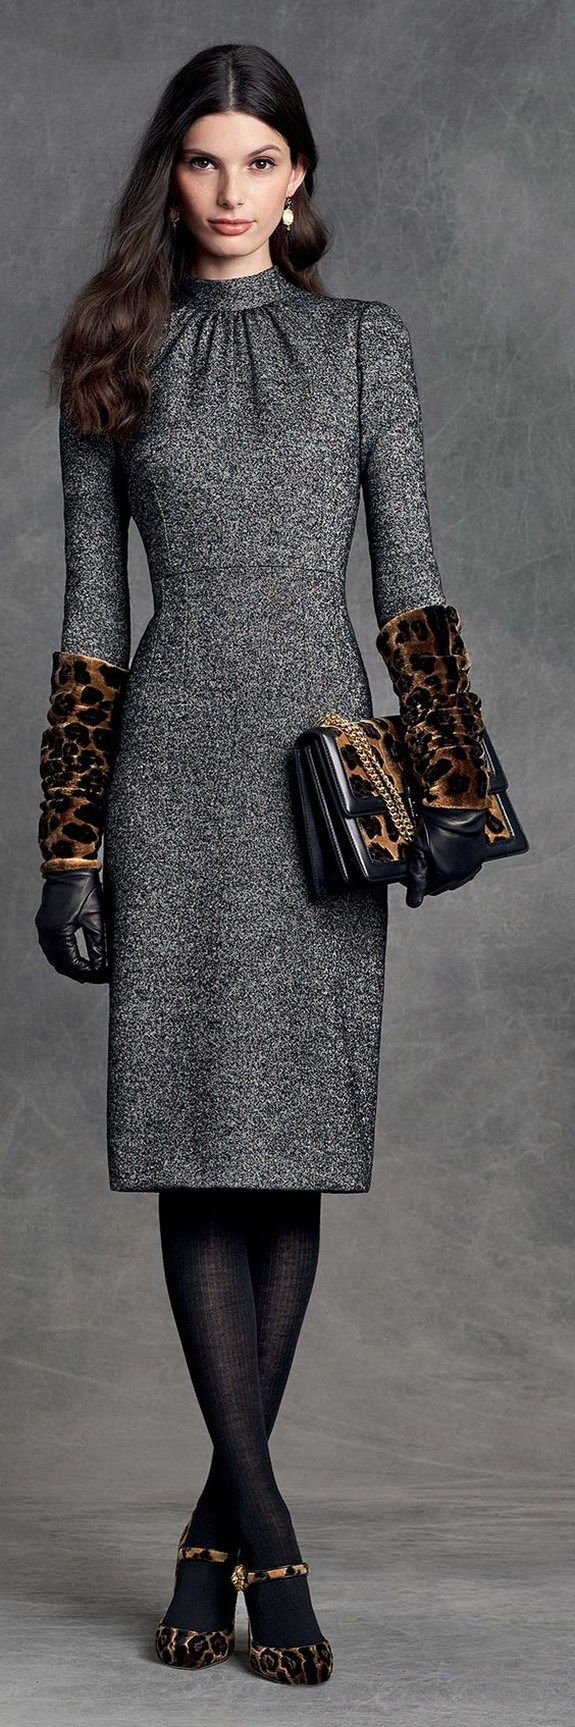 Dress fashion winter 2018